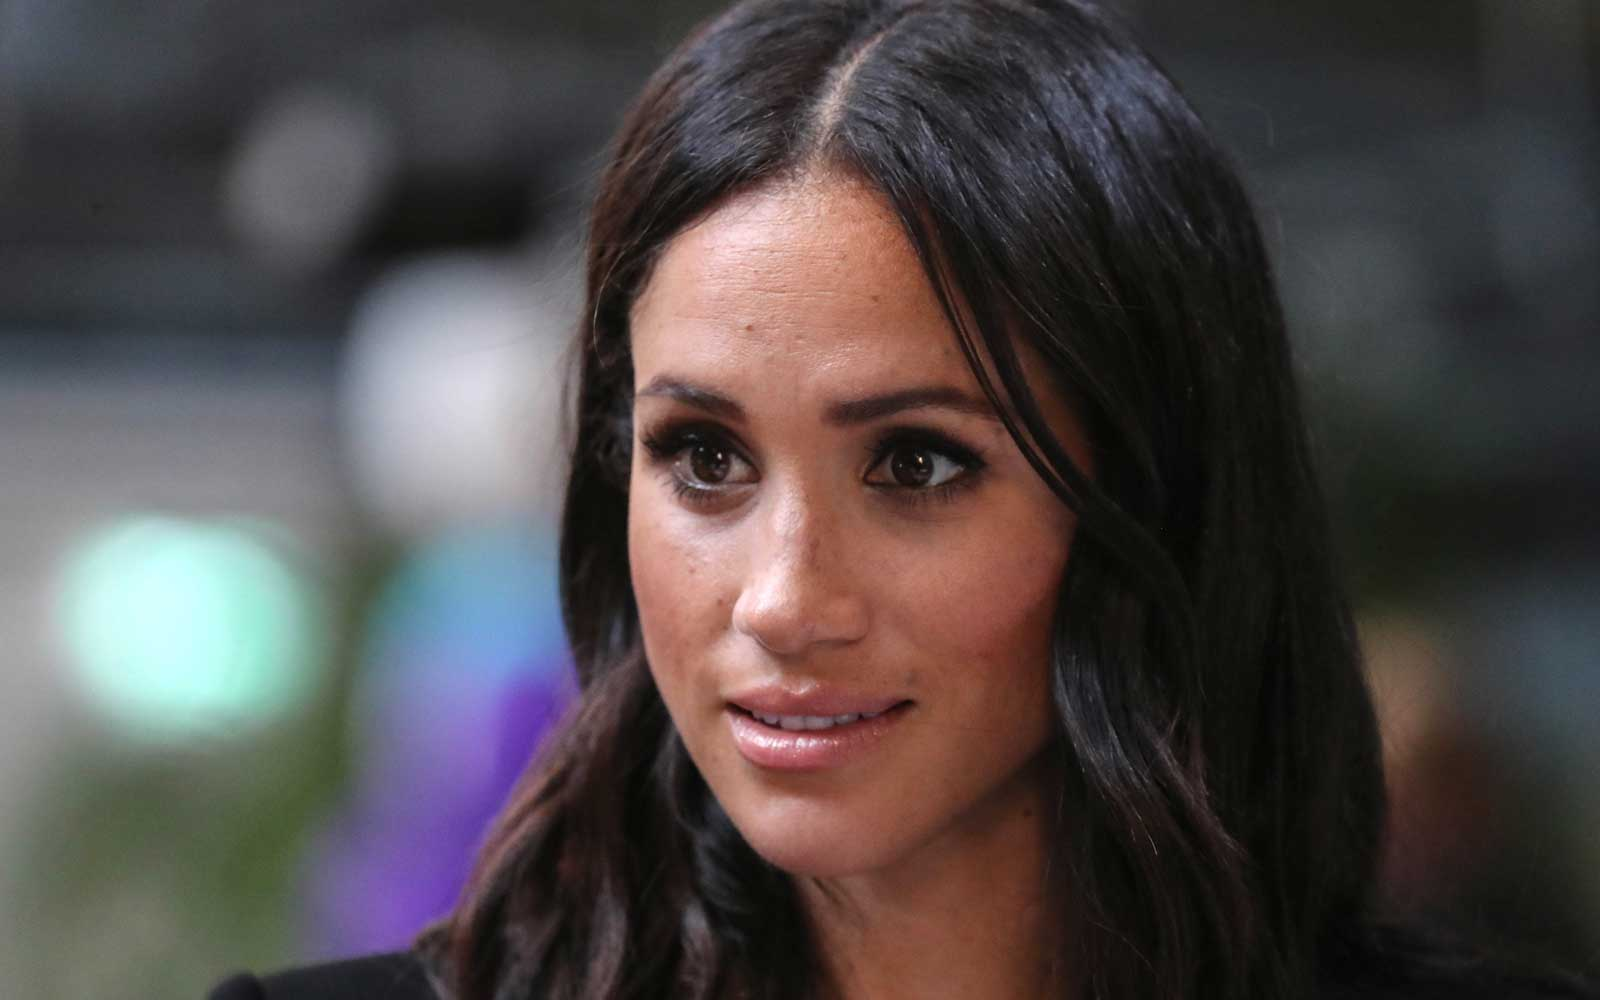 How Meghan Markle Shops at Whole Foods Without Anyone Noticing